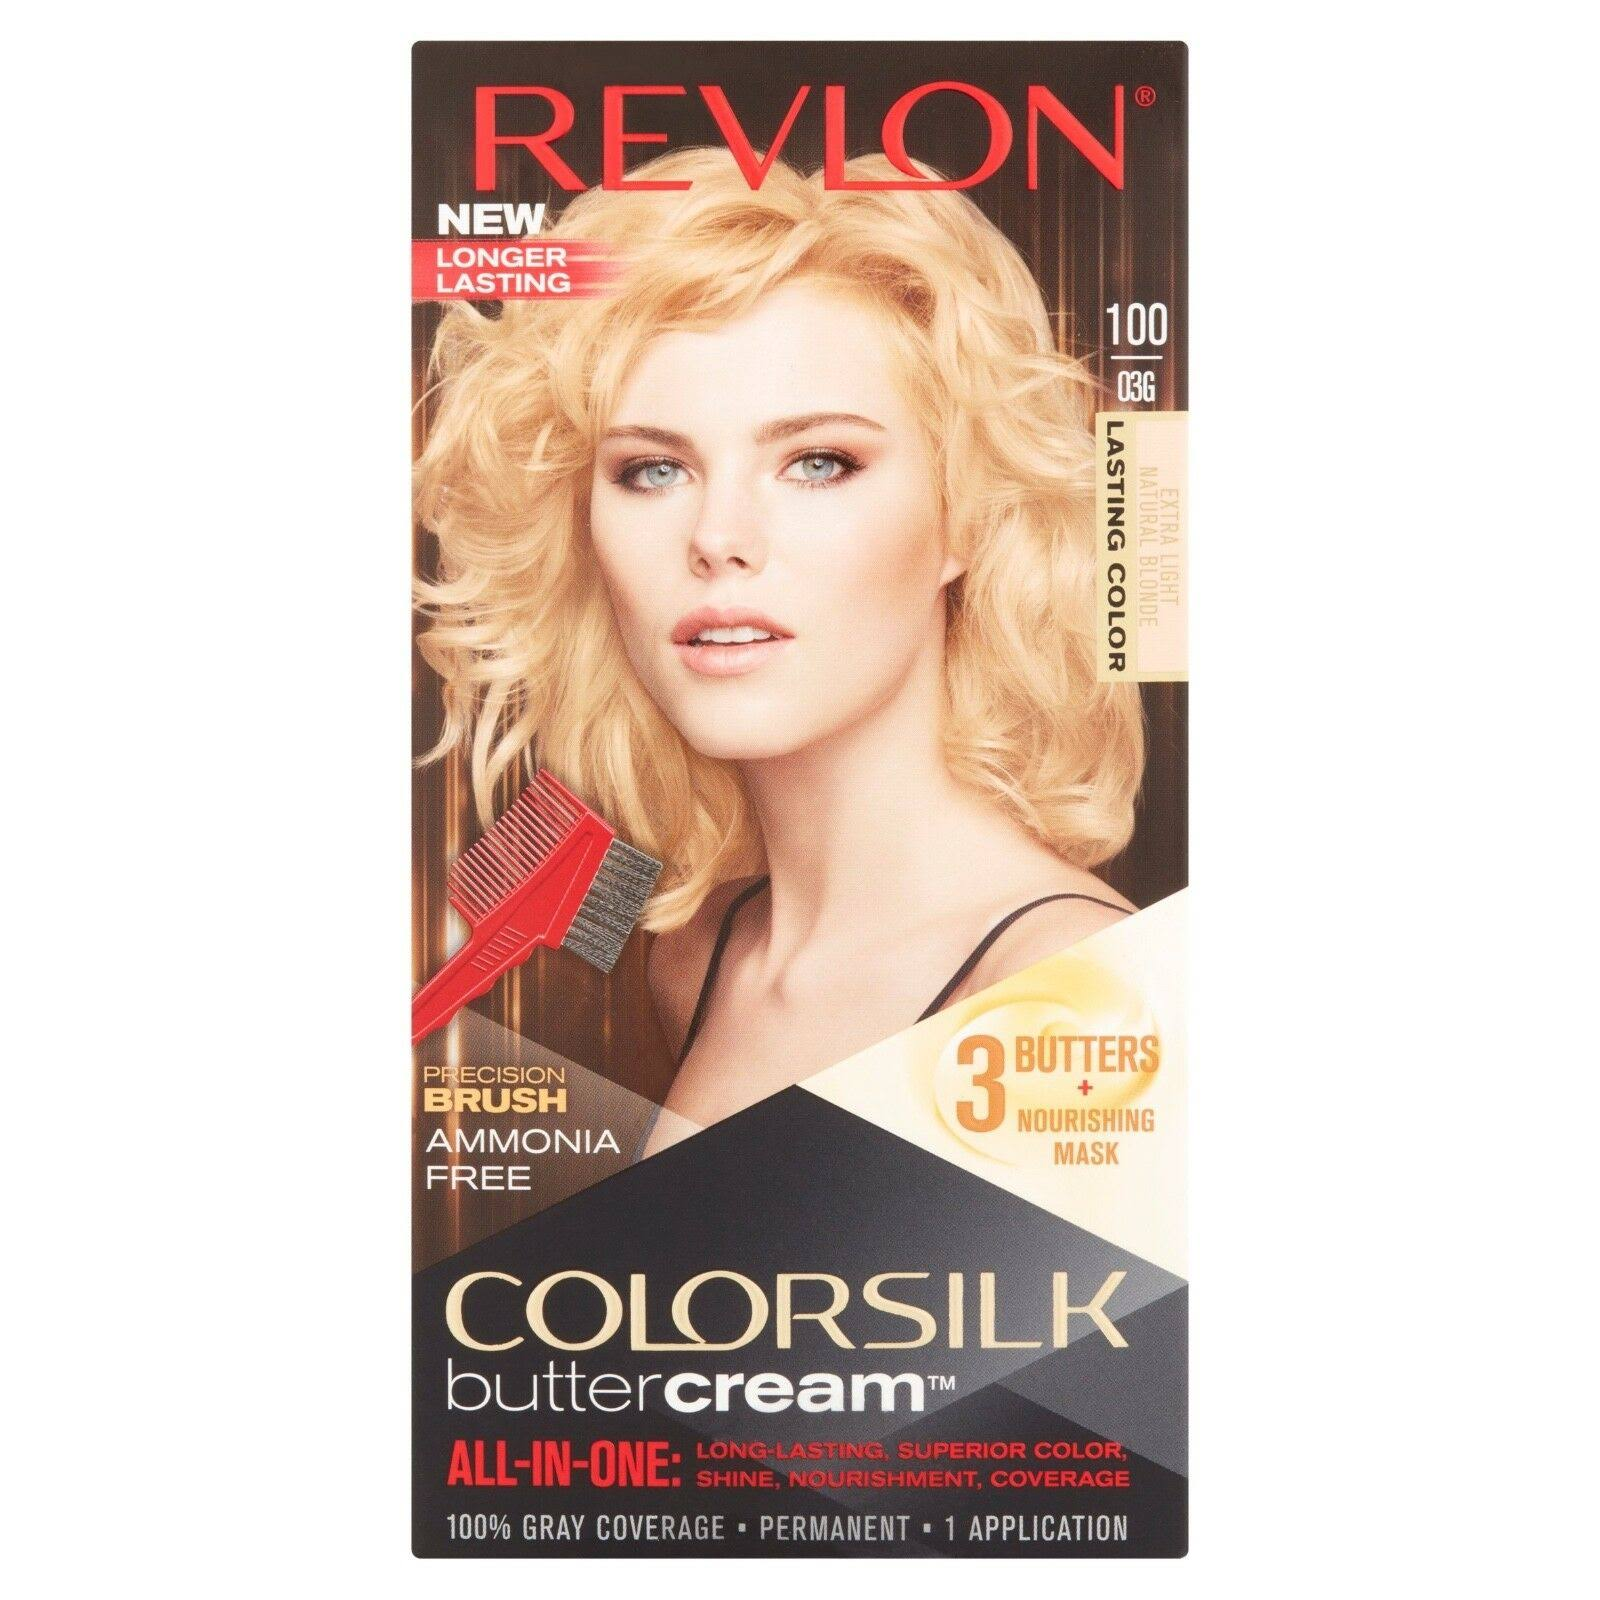 Revlon Colorsilk Buttercream Hair Color Kit - 100 Extra Light Natural Blonde